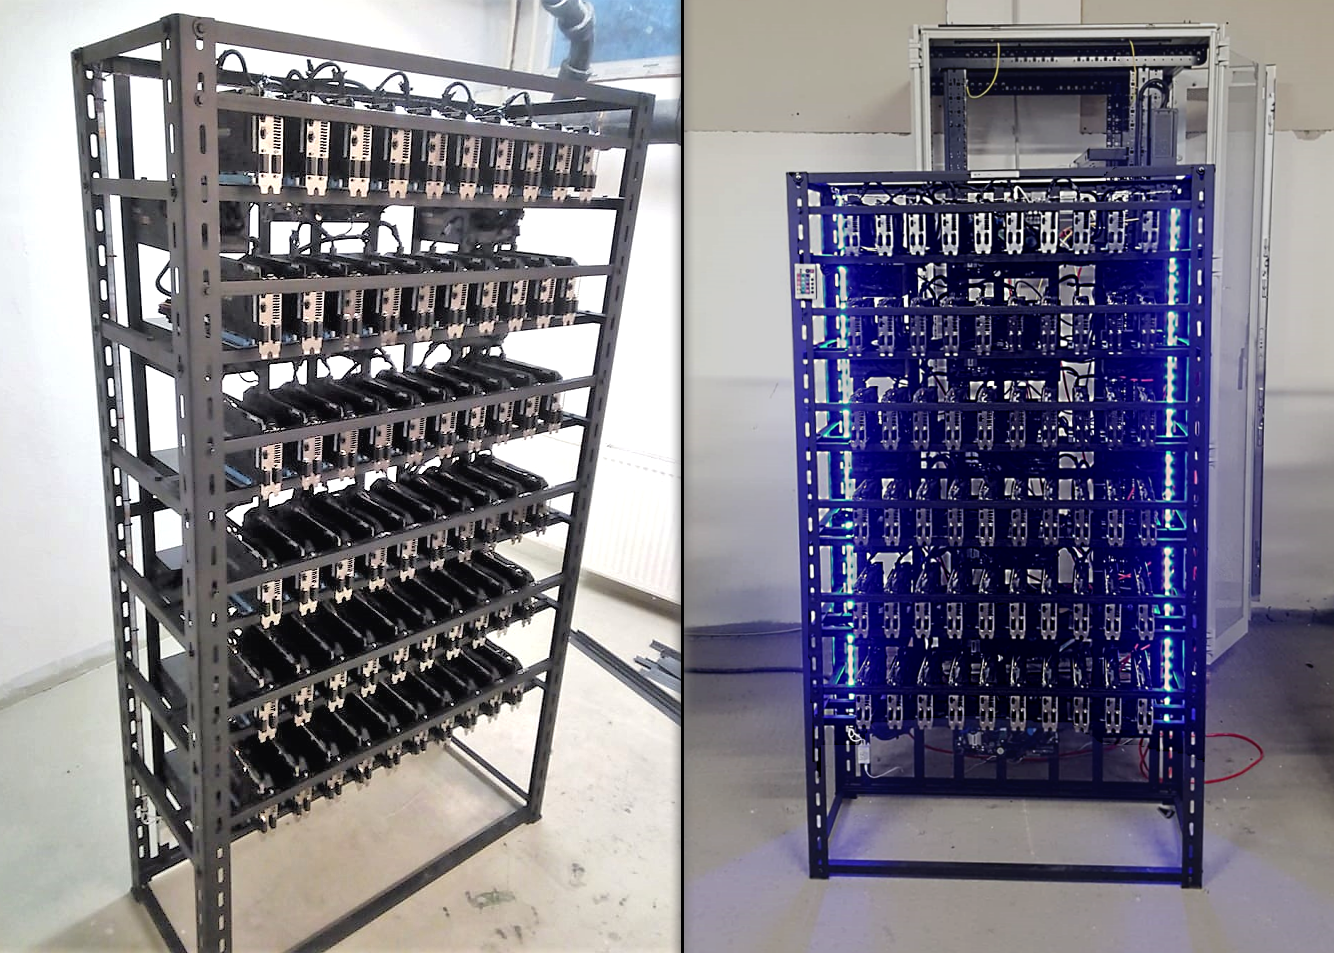 Computer-Machine Miner for Ethereum Mining 1800 MHs, 60 GPU card in frame, for sale